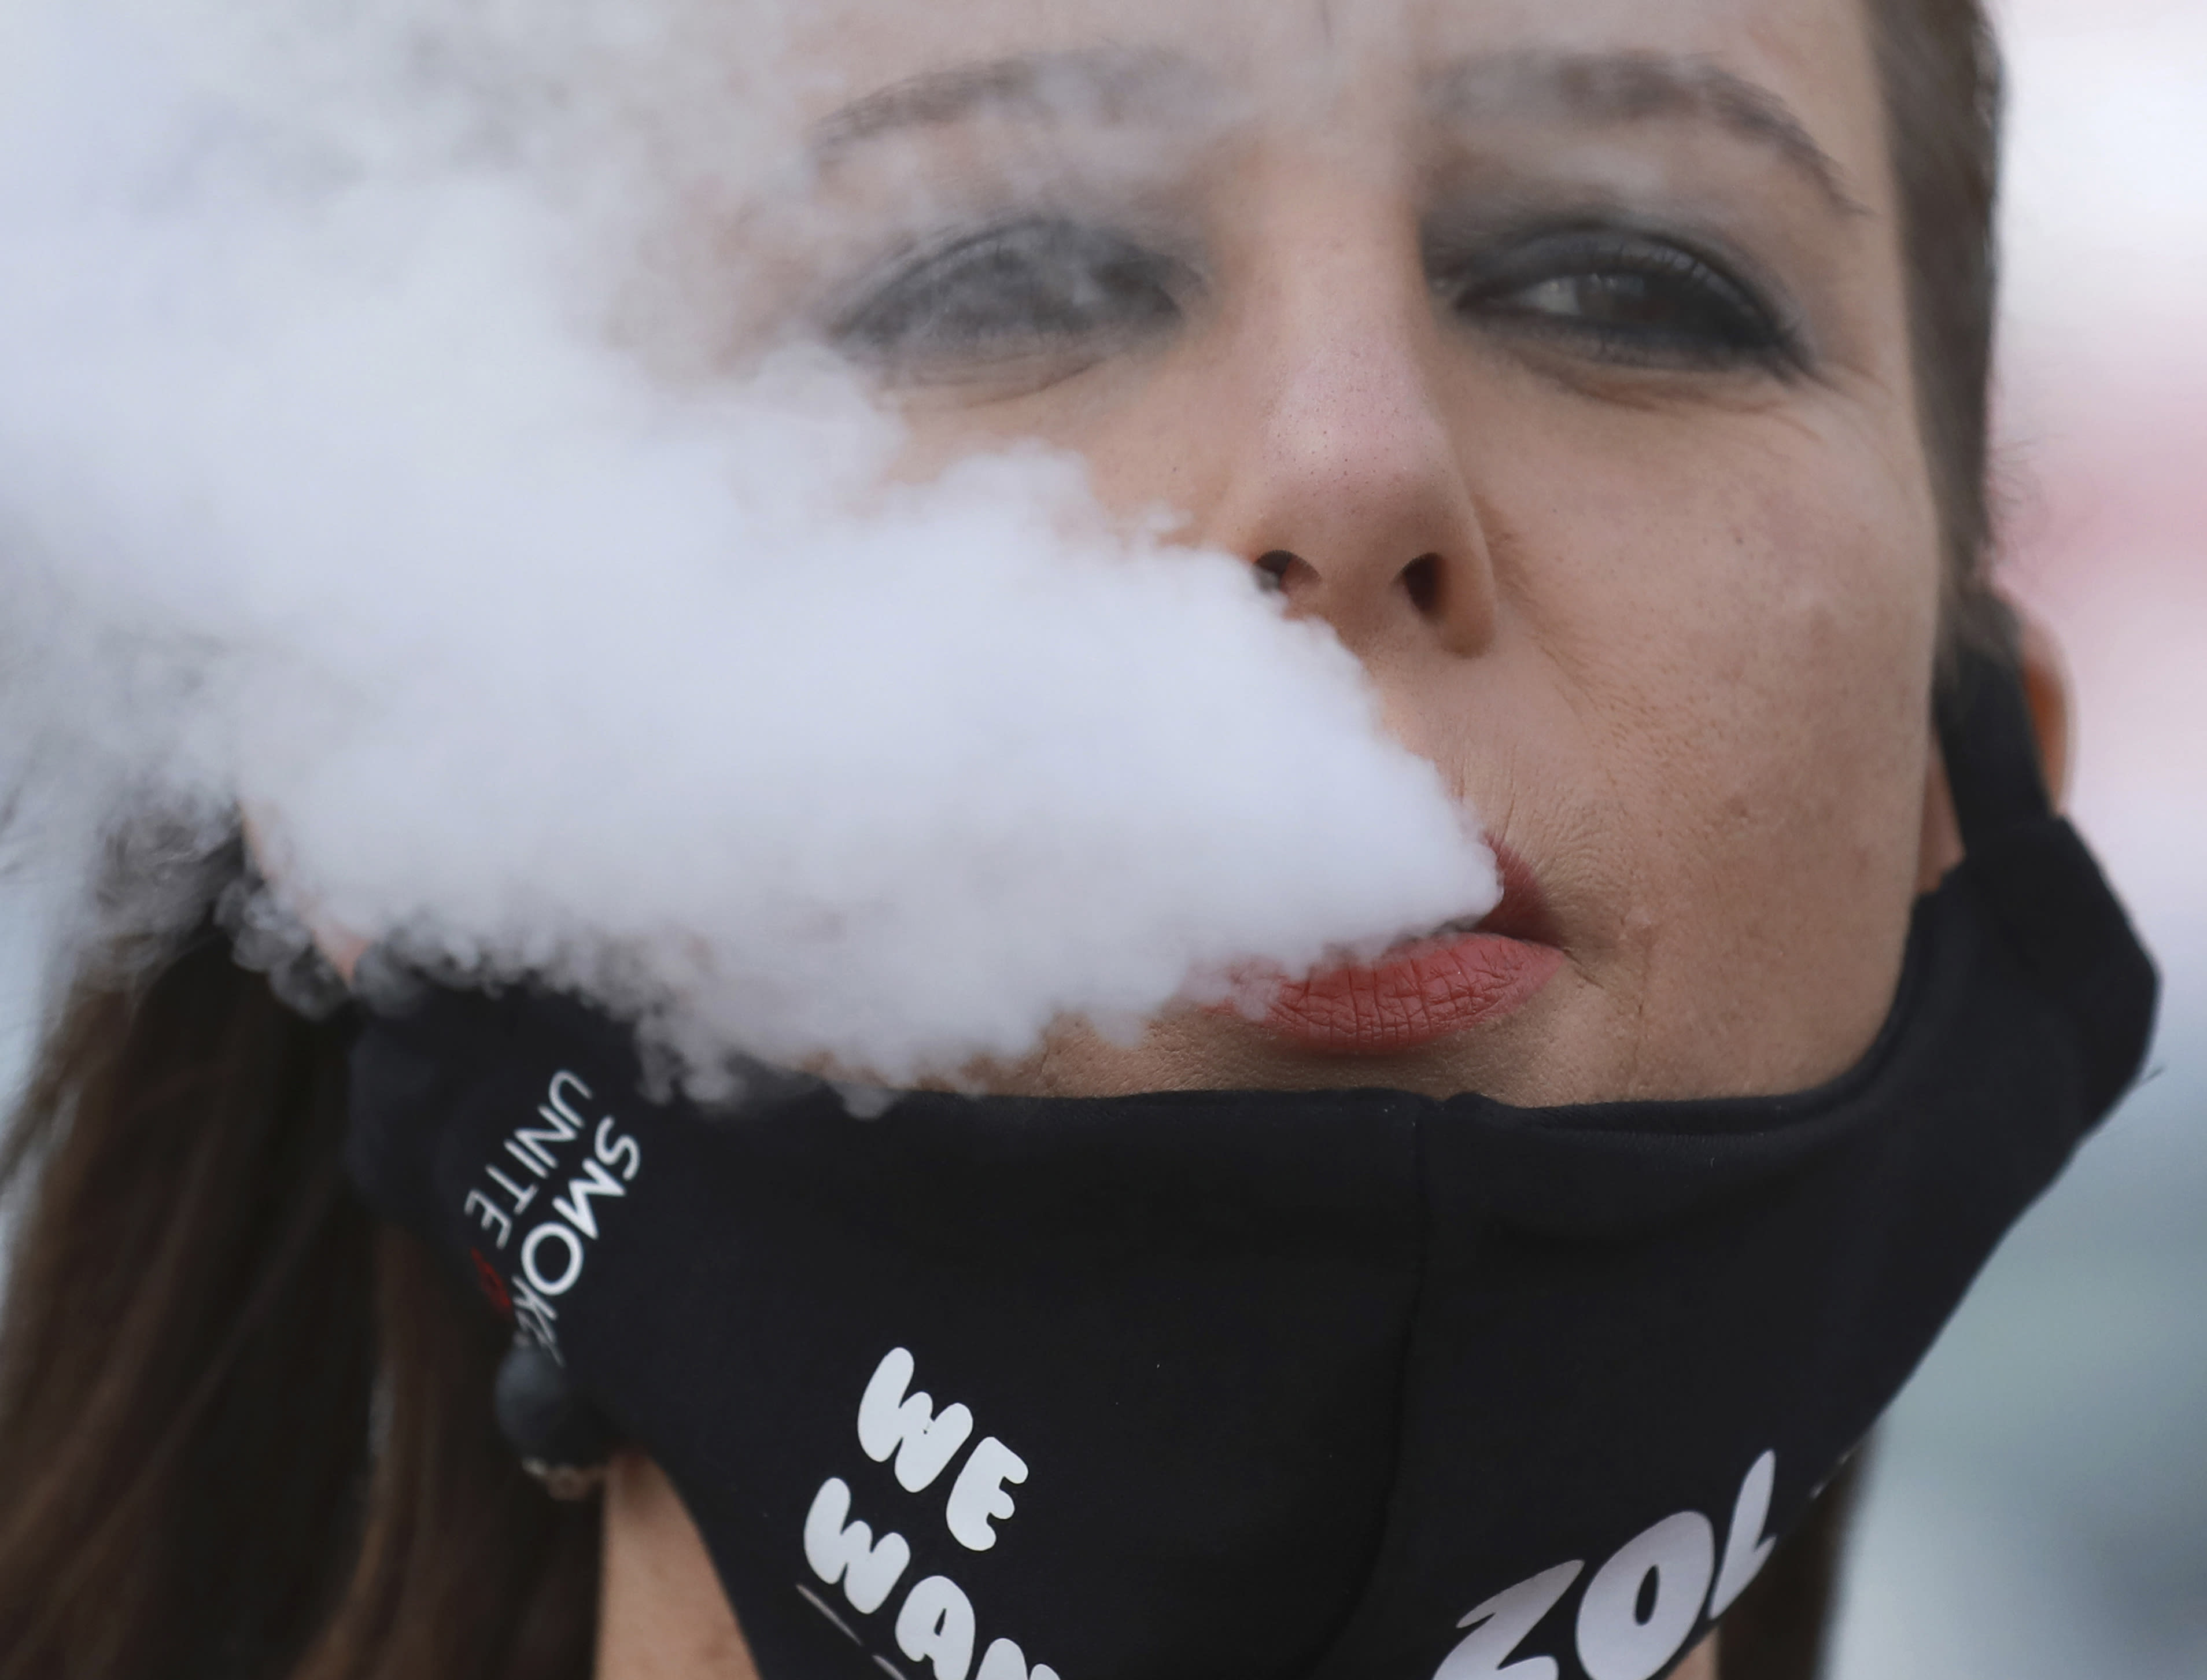 FILE — In this June 2, 2020 file photo, a demonstrator exhales smoke during a protest against the tobacco ban outside parliament in Cape Town, South Africa. South Africa is three months into a ban on the sale of cigarettes and other tobacco products, an unusual tactic employed by a government to protect the health of its citizens during the coronavirus pandemic. The country is one of just a few around the world to have banned tobacco sales during the pandemic and the only one to still have it in place. (AP Photo/Nardus Engelbrecht/File)